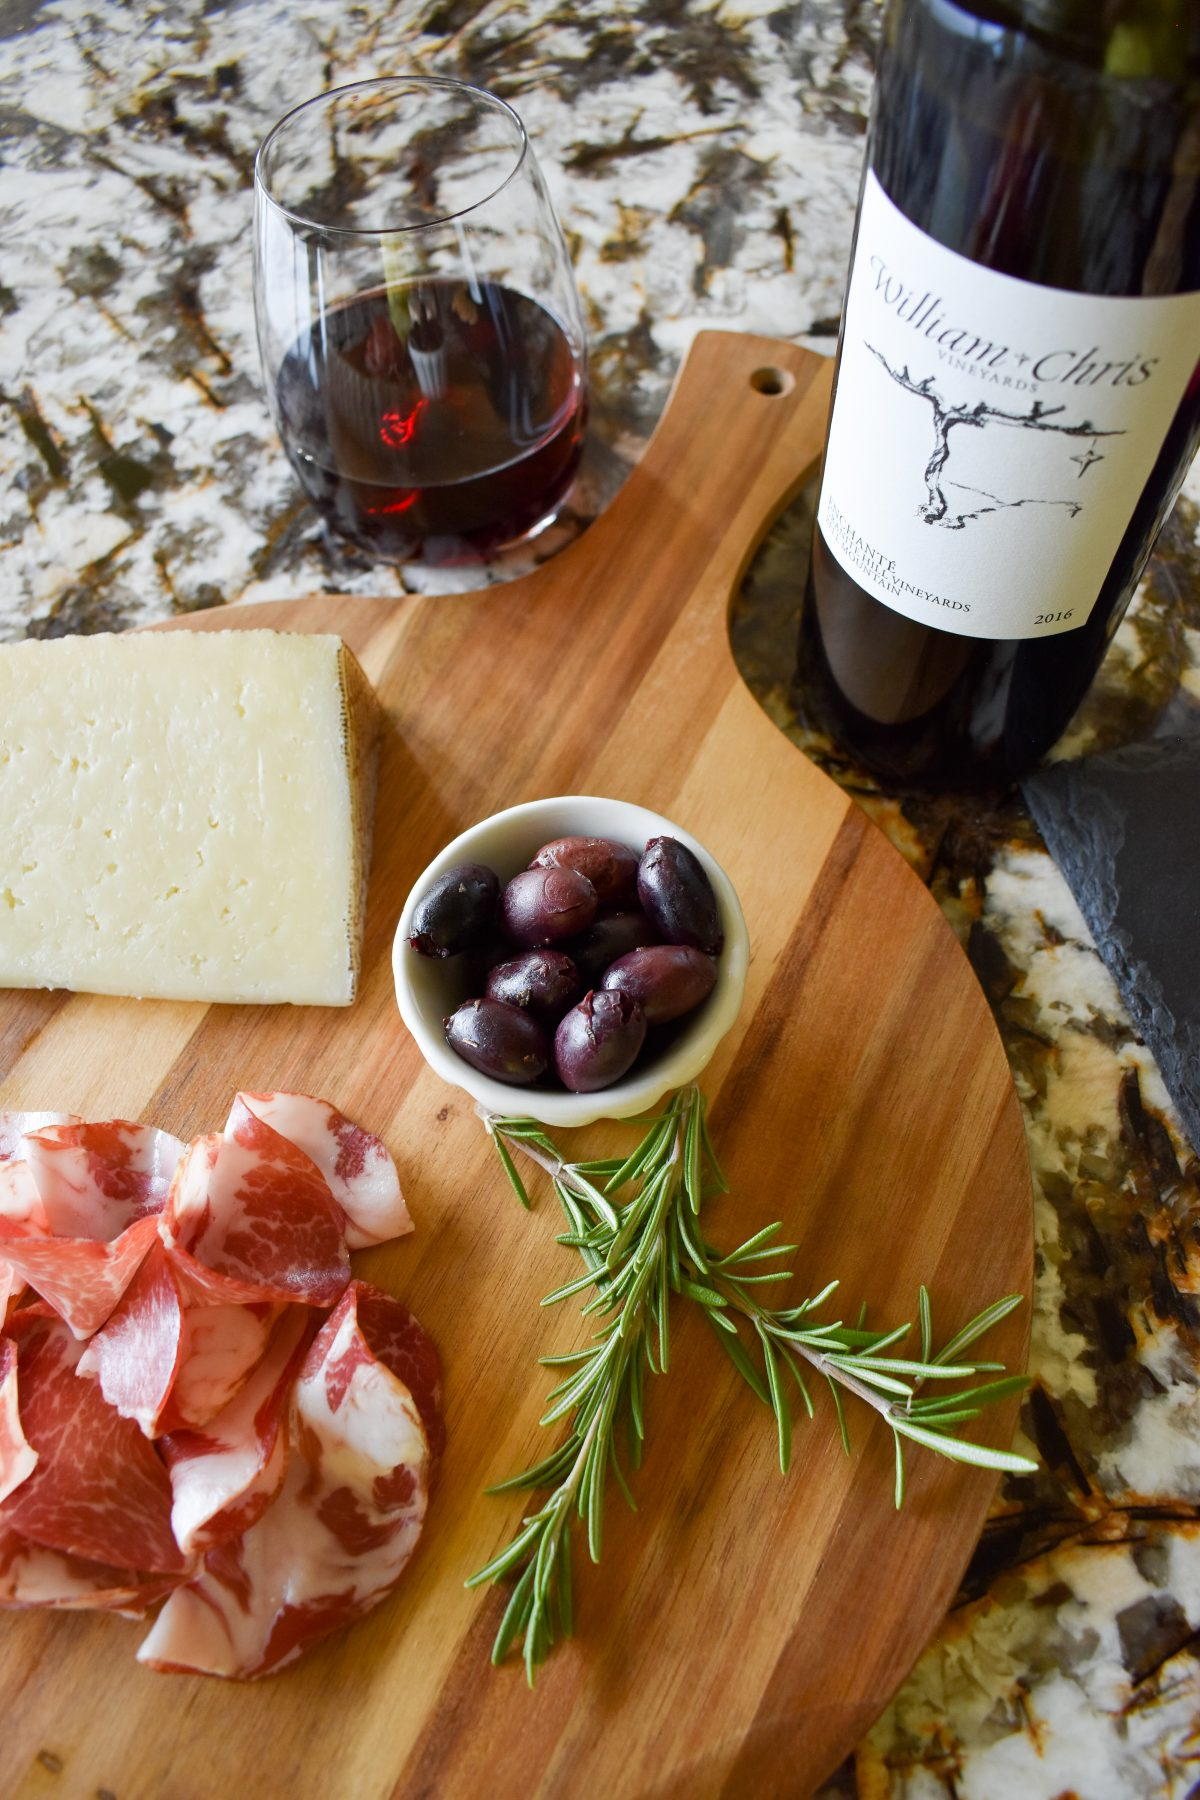 Enchanté red wine from William Chris Vineyards with a charcuterie board of coppa, olives, and manchego cheese.